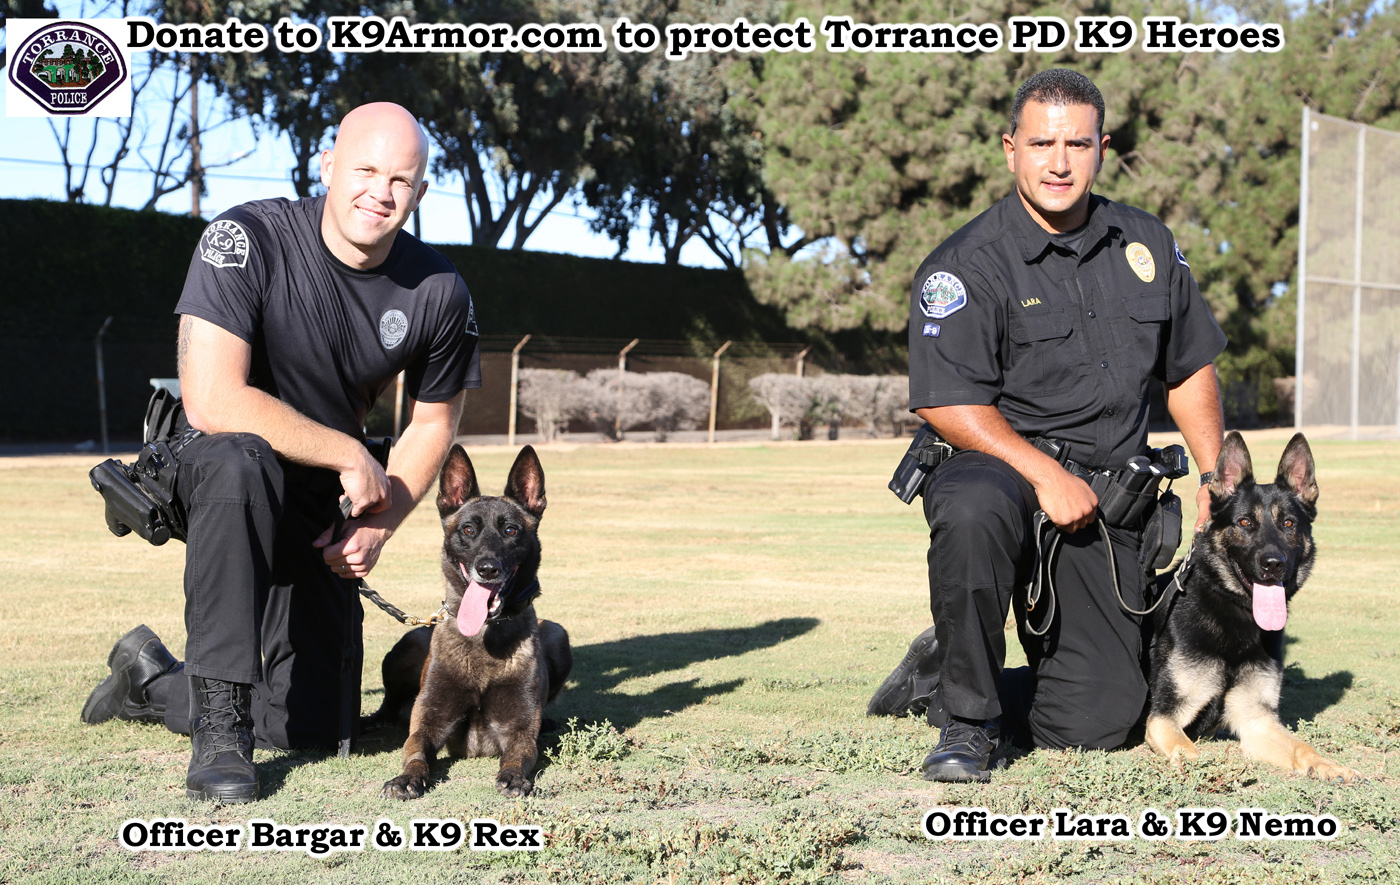 K9 Armor needs donations for Torrance PD K9 Heroes K9 Rex and K9 Nemo